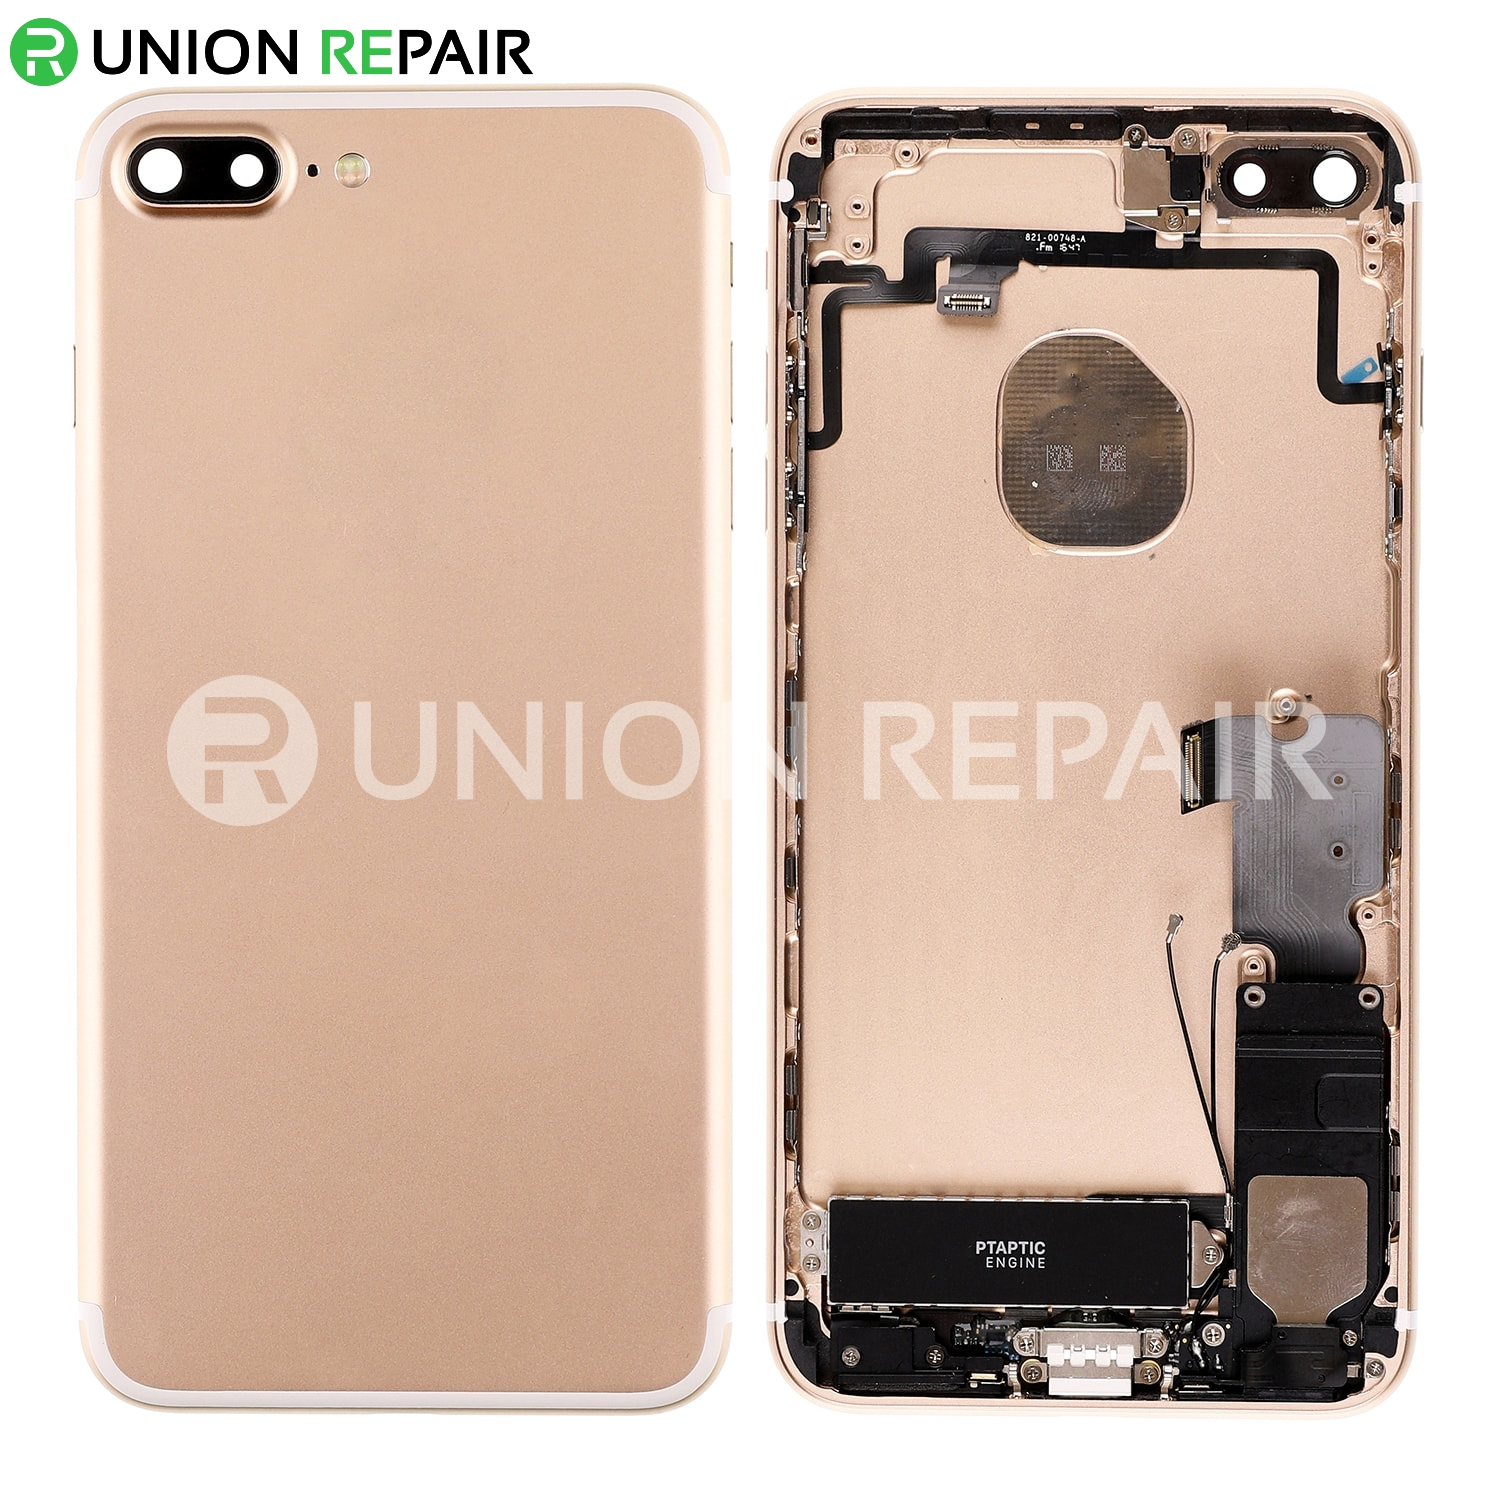 sneakers for cheap 05ca7 9ccd7 Replacement for iPhone 7 Plus Back Cover Full Assembly - Gold